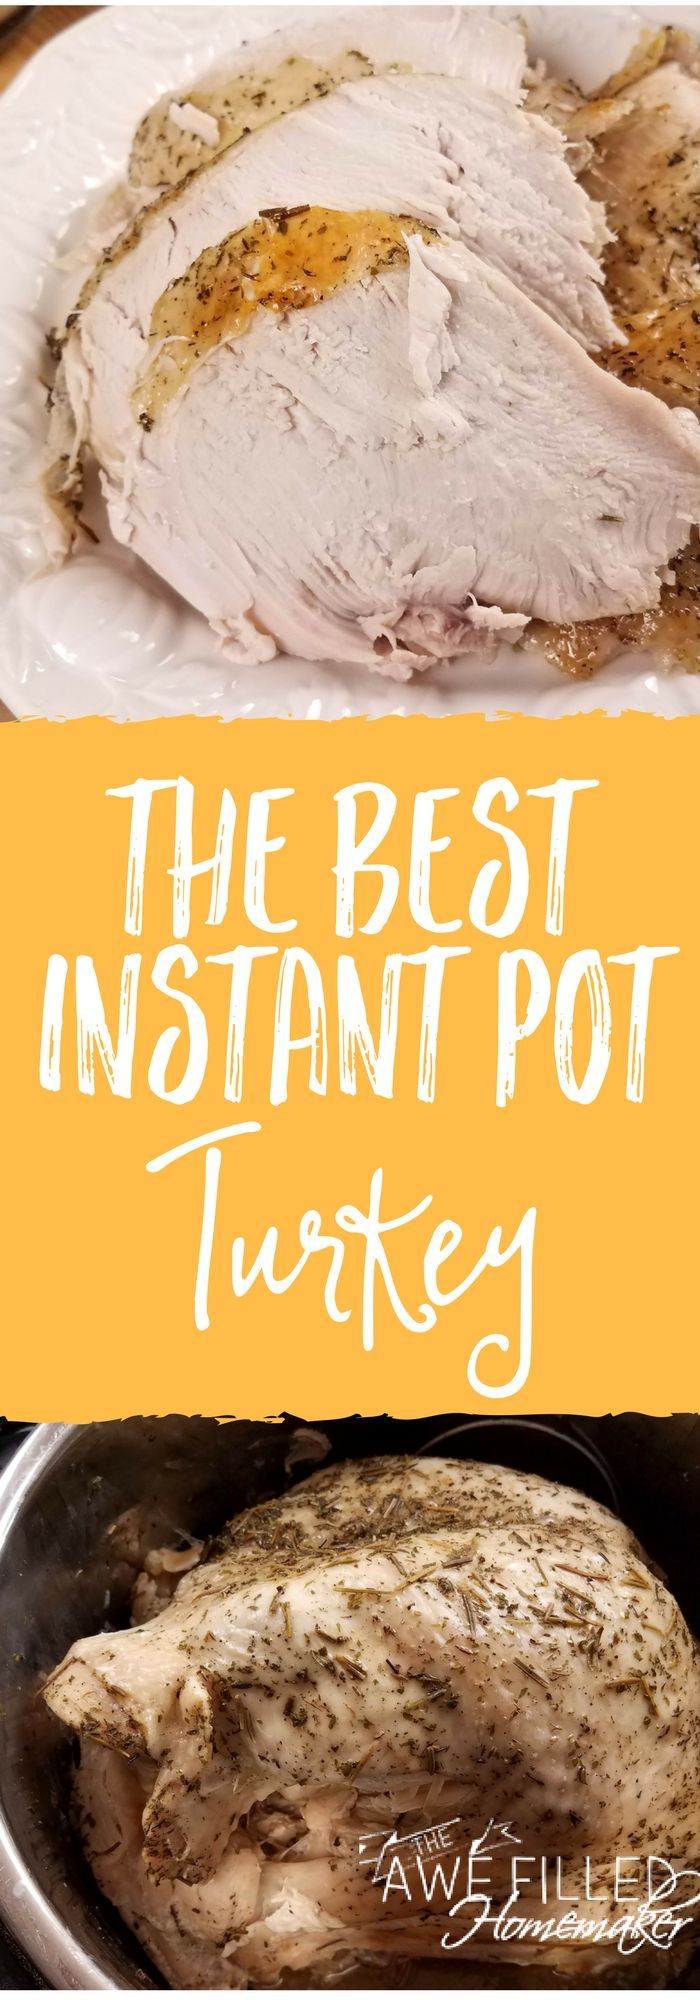 The holidays are just around the corner! That means turkey! All the turkeys! Well, y'all will want to try this instant pot turkey and gravy! It is the BEST! YUM #Thanksgiving #Christmas #Turkey #Turkey Recipe #InstantPot #InstantPotTurkey via @AFHomemaker